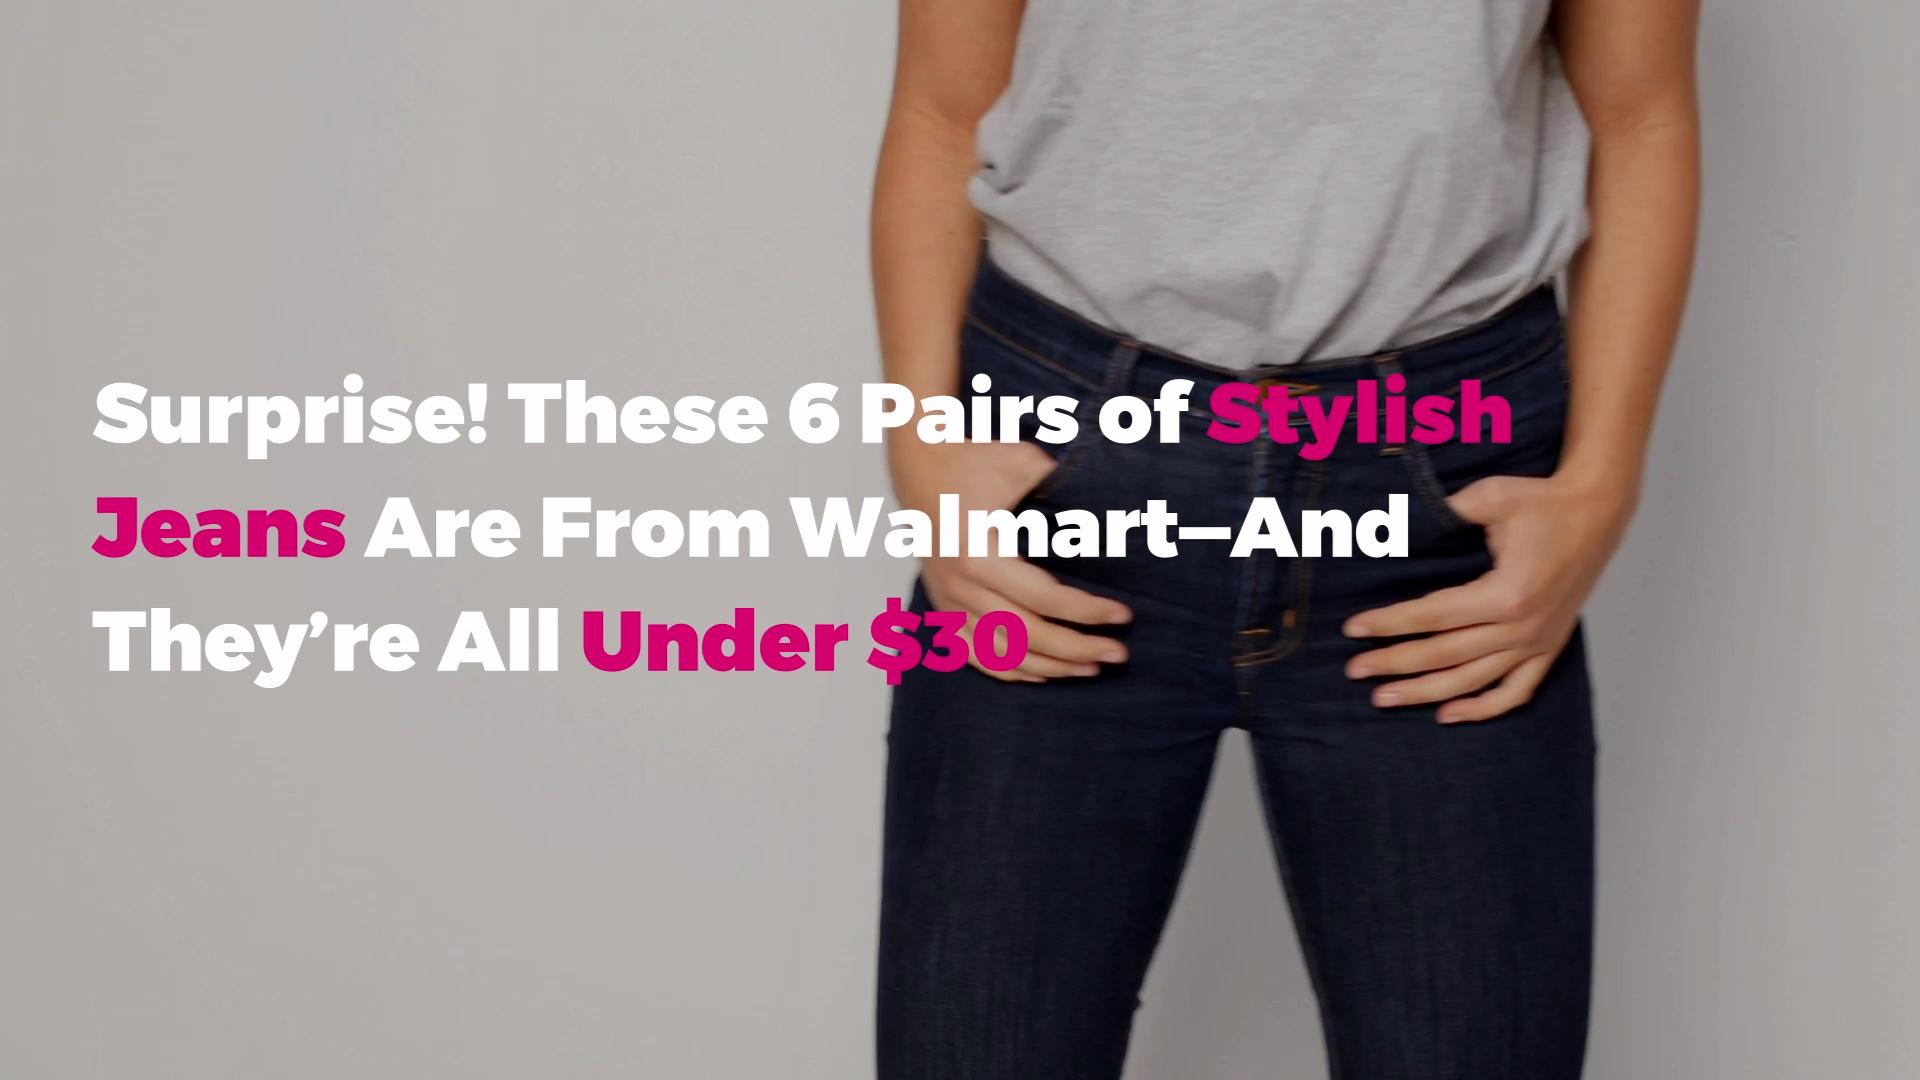 c10c8d511c Best Walmart Jeans From Sofía Vergara and Ellen Degeneres | Real Simple